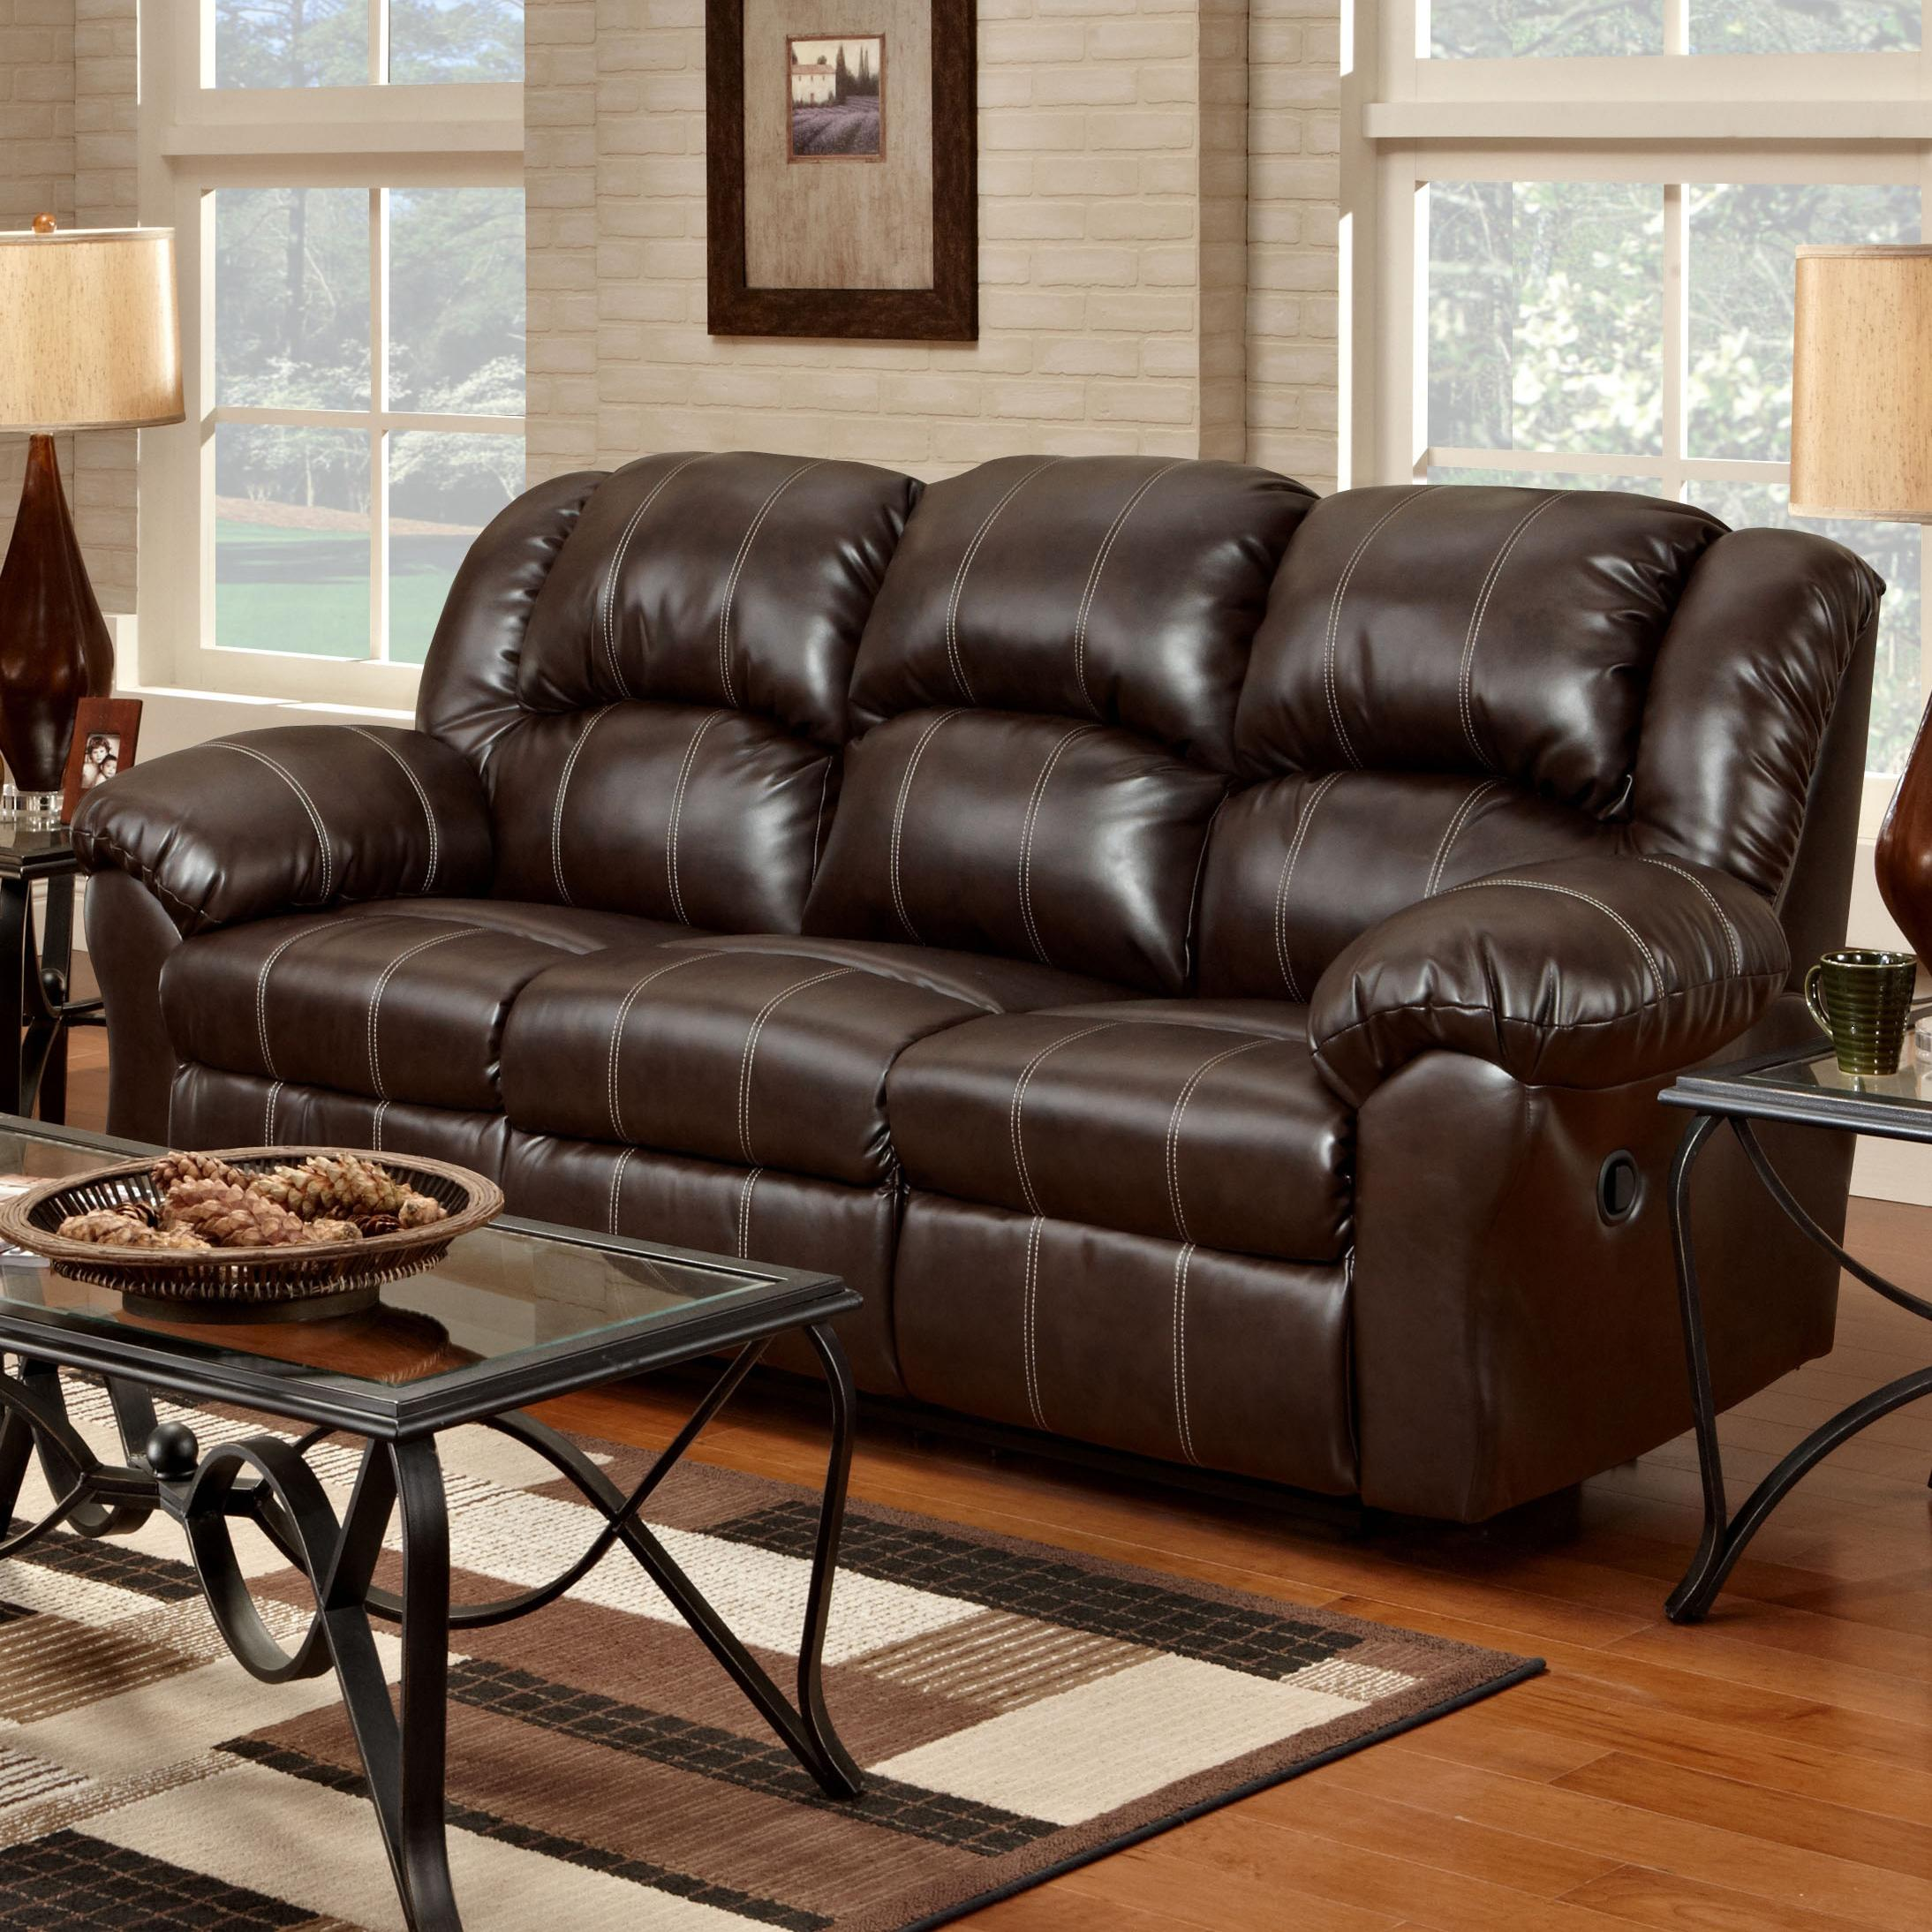 Affordable furniture 1000 reclining sofa with pub back saddle stitching